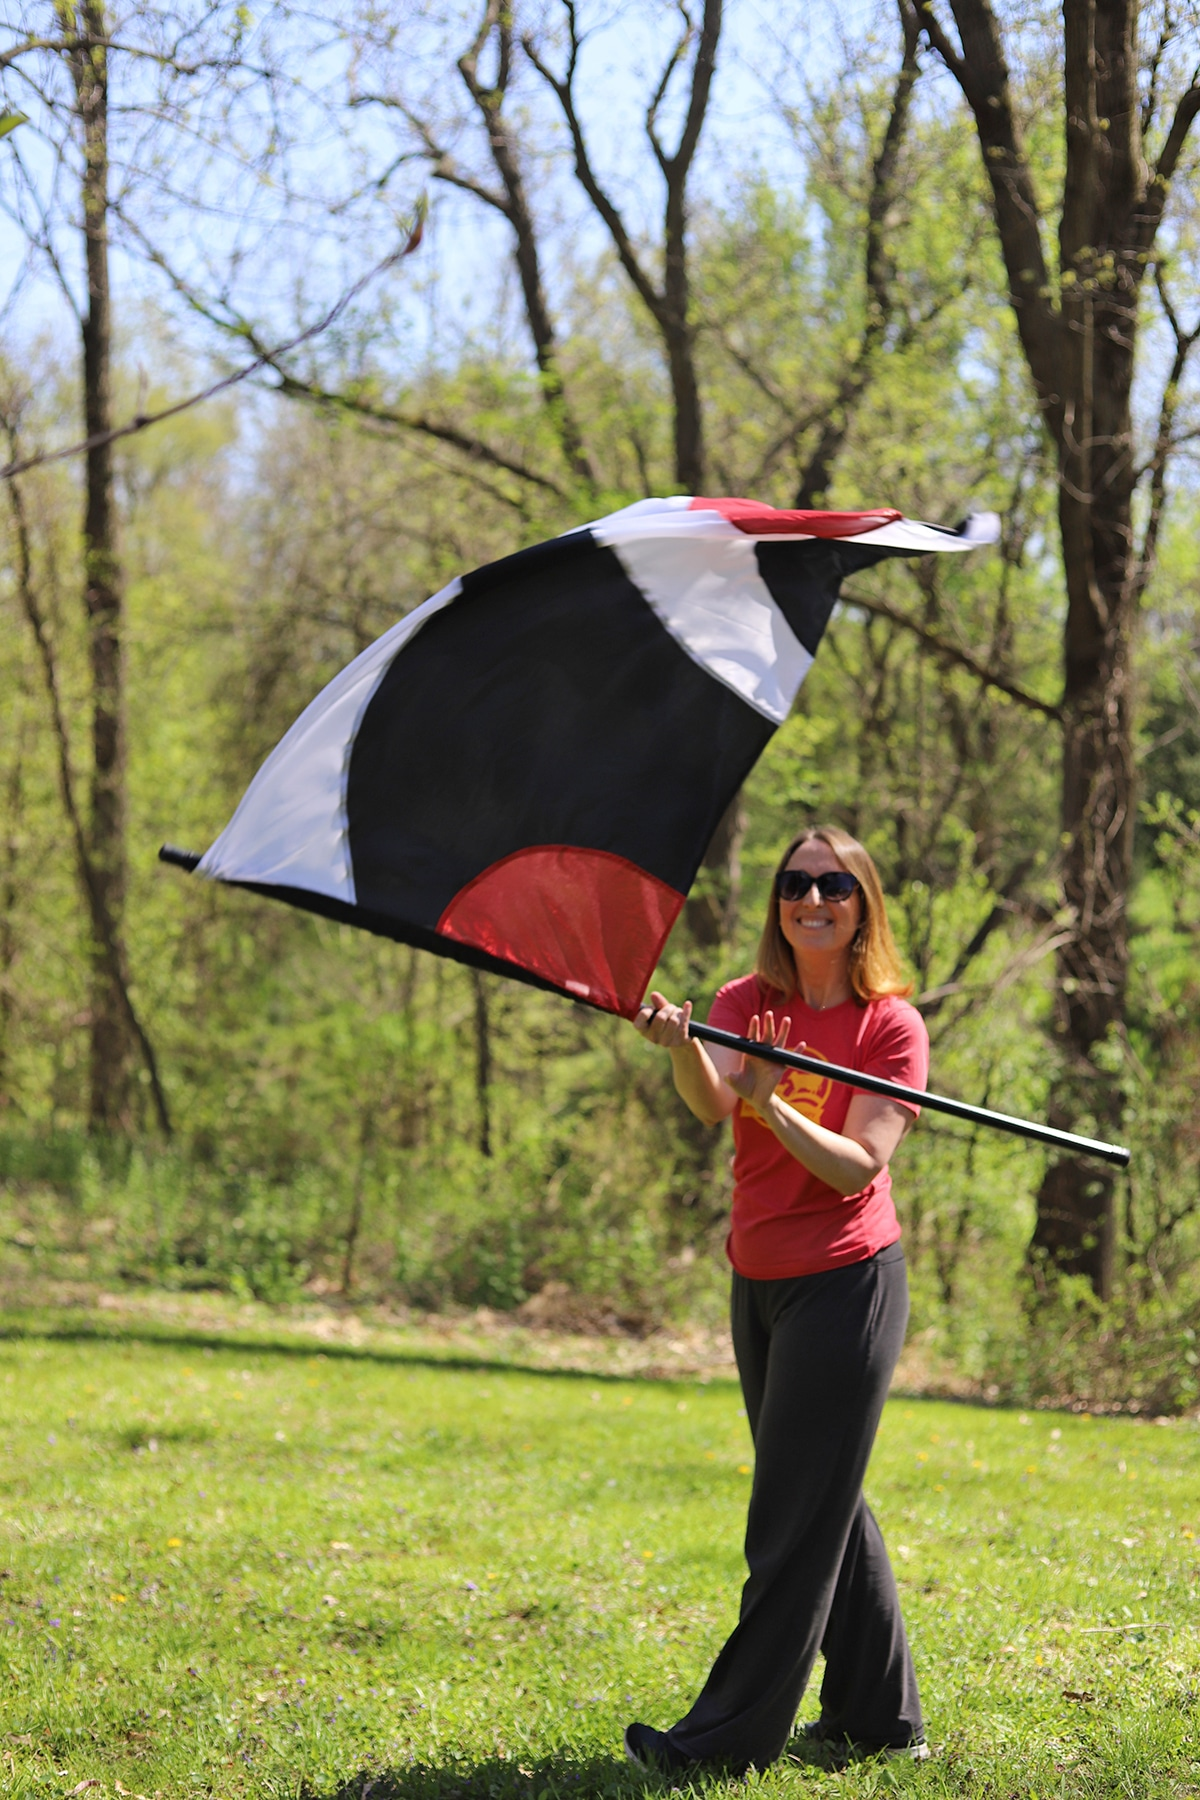 Cadry twirling a flag in the yard.